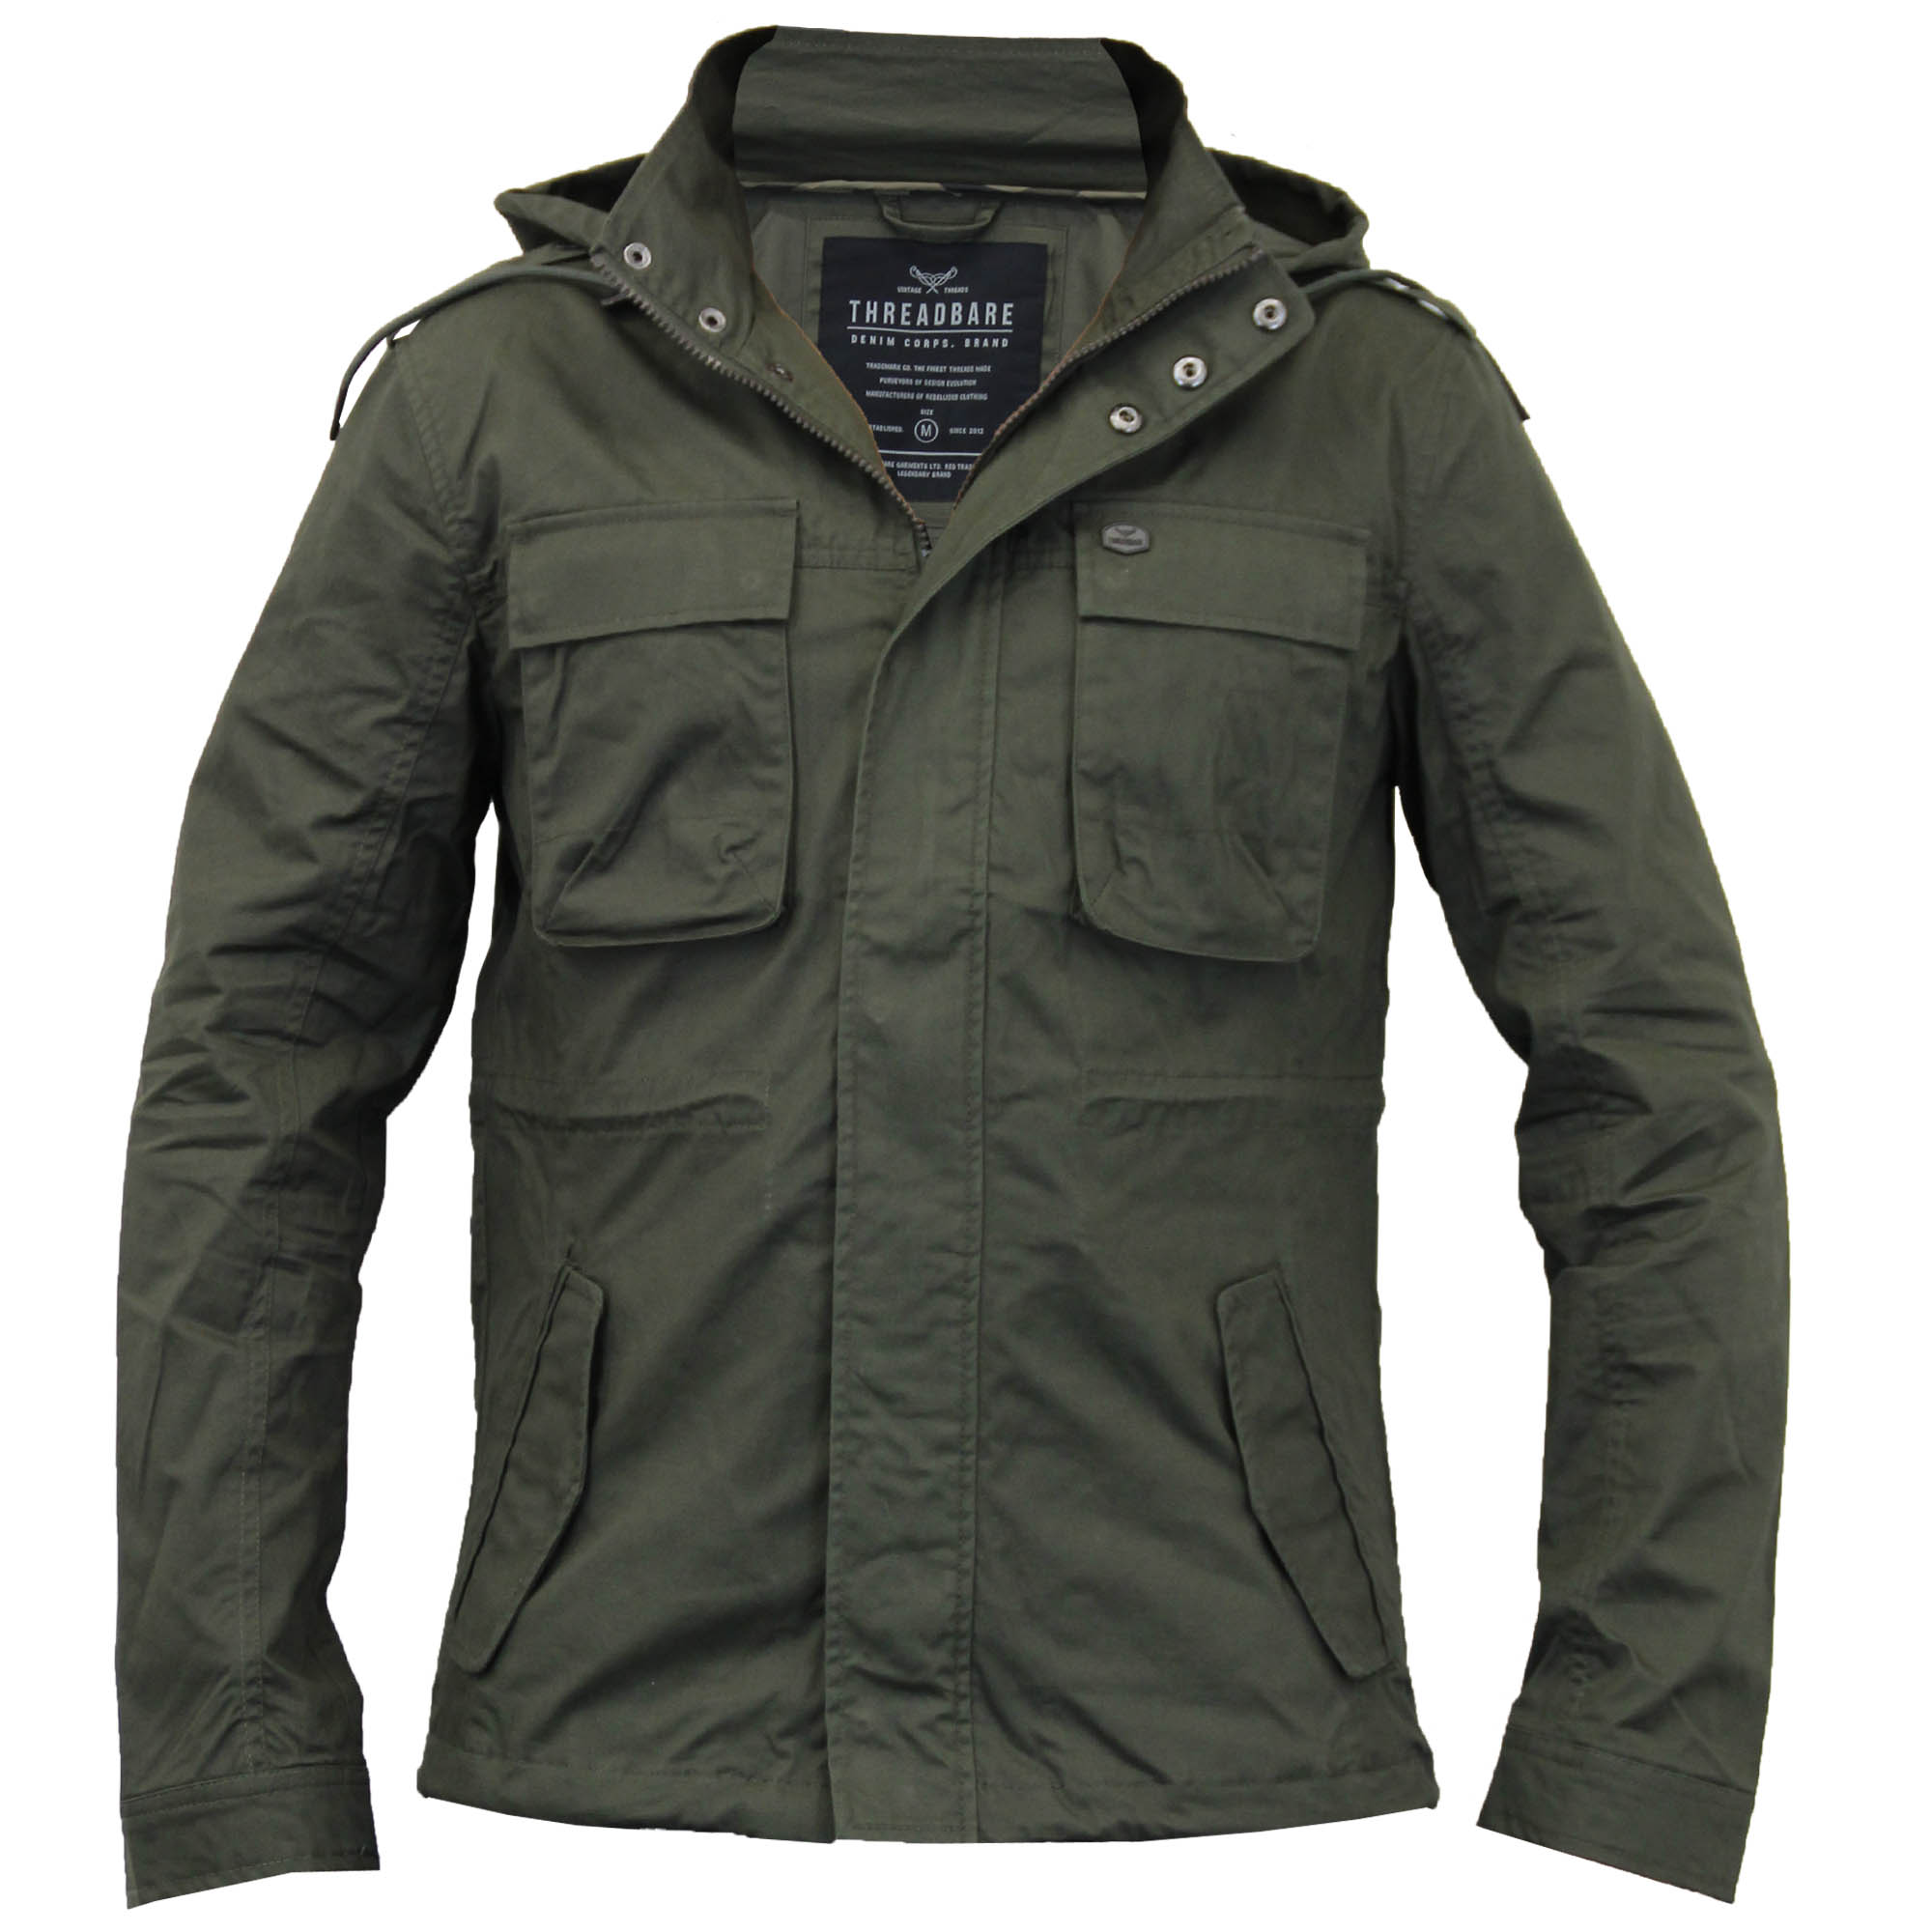 Utility and style merge for this men's hooded military jacket from Route This lightweight canvas jacket is decked out with multiple secure pockets. The drawstring hood includes a soft knit lining for comfort. A snap placket covers the front zipper to ensure coverage and create a .